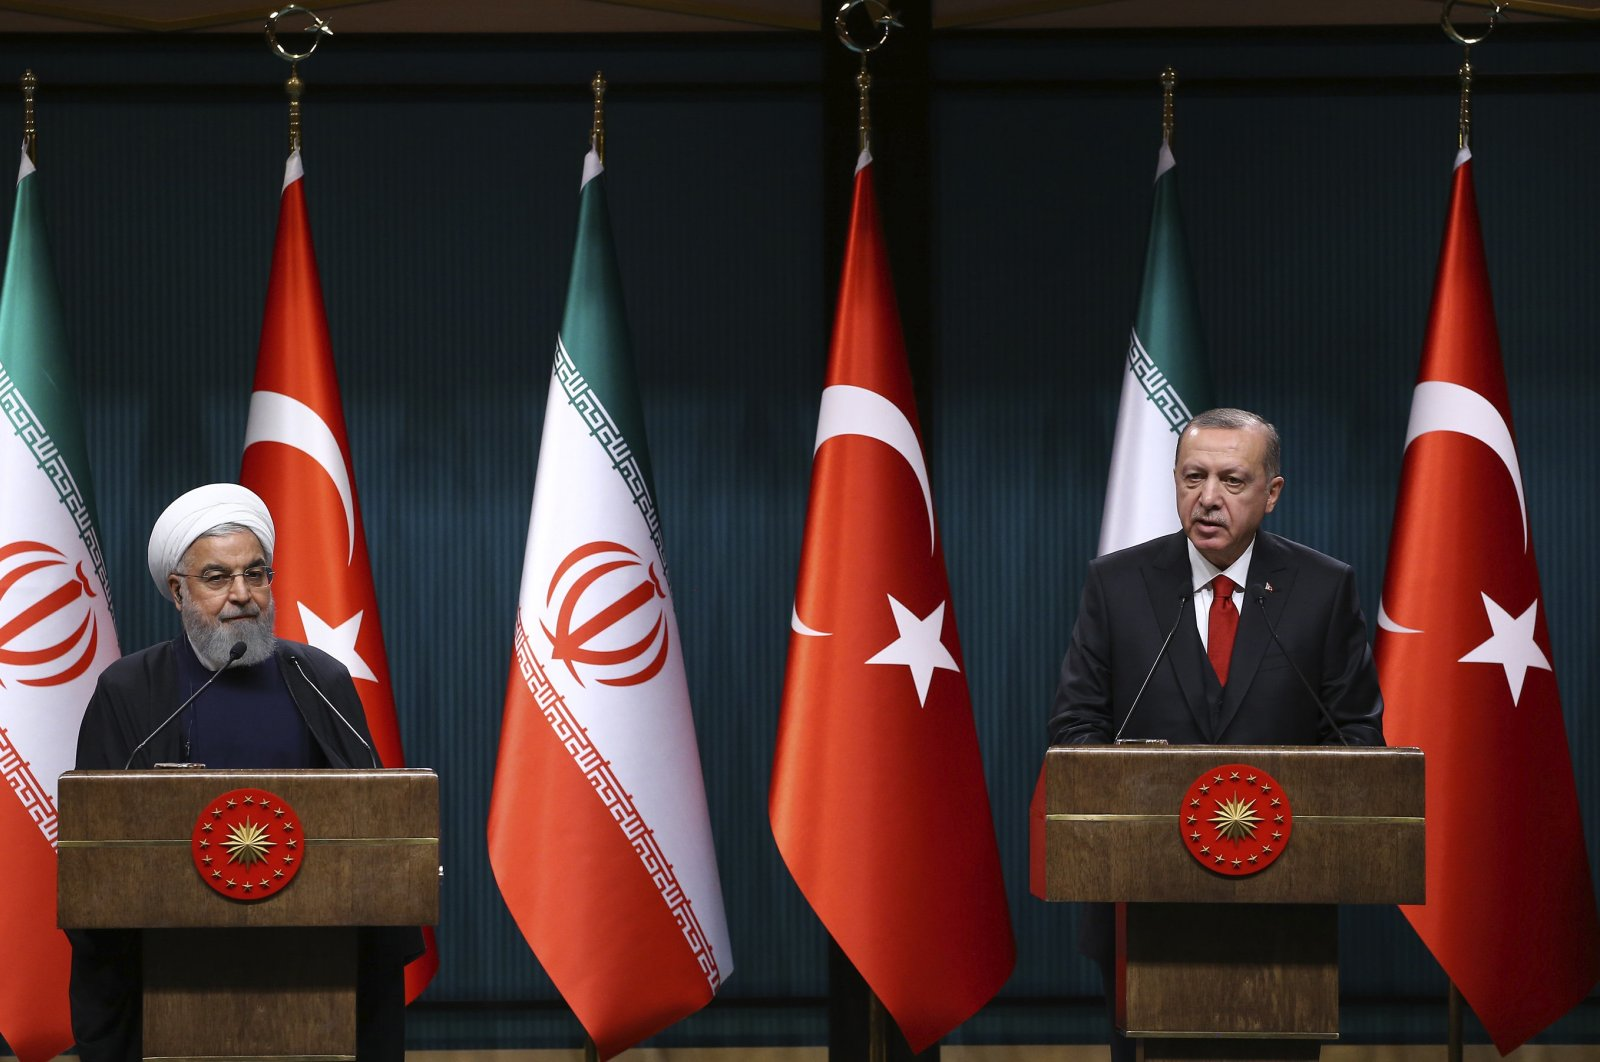 President Recep Tayyip Erdoğan (R) and Iranian President Hassan Rouhani hold a joint news conference following the fifth Turkish-Iranian High-Level Cooperation Council meeting, in Ankara, Turkey, Dec. 21, 2018. (AA Photo)